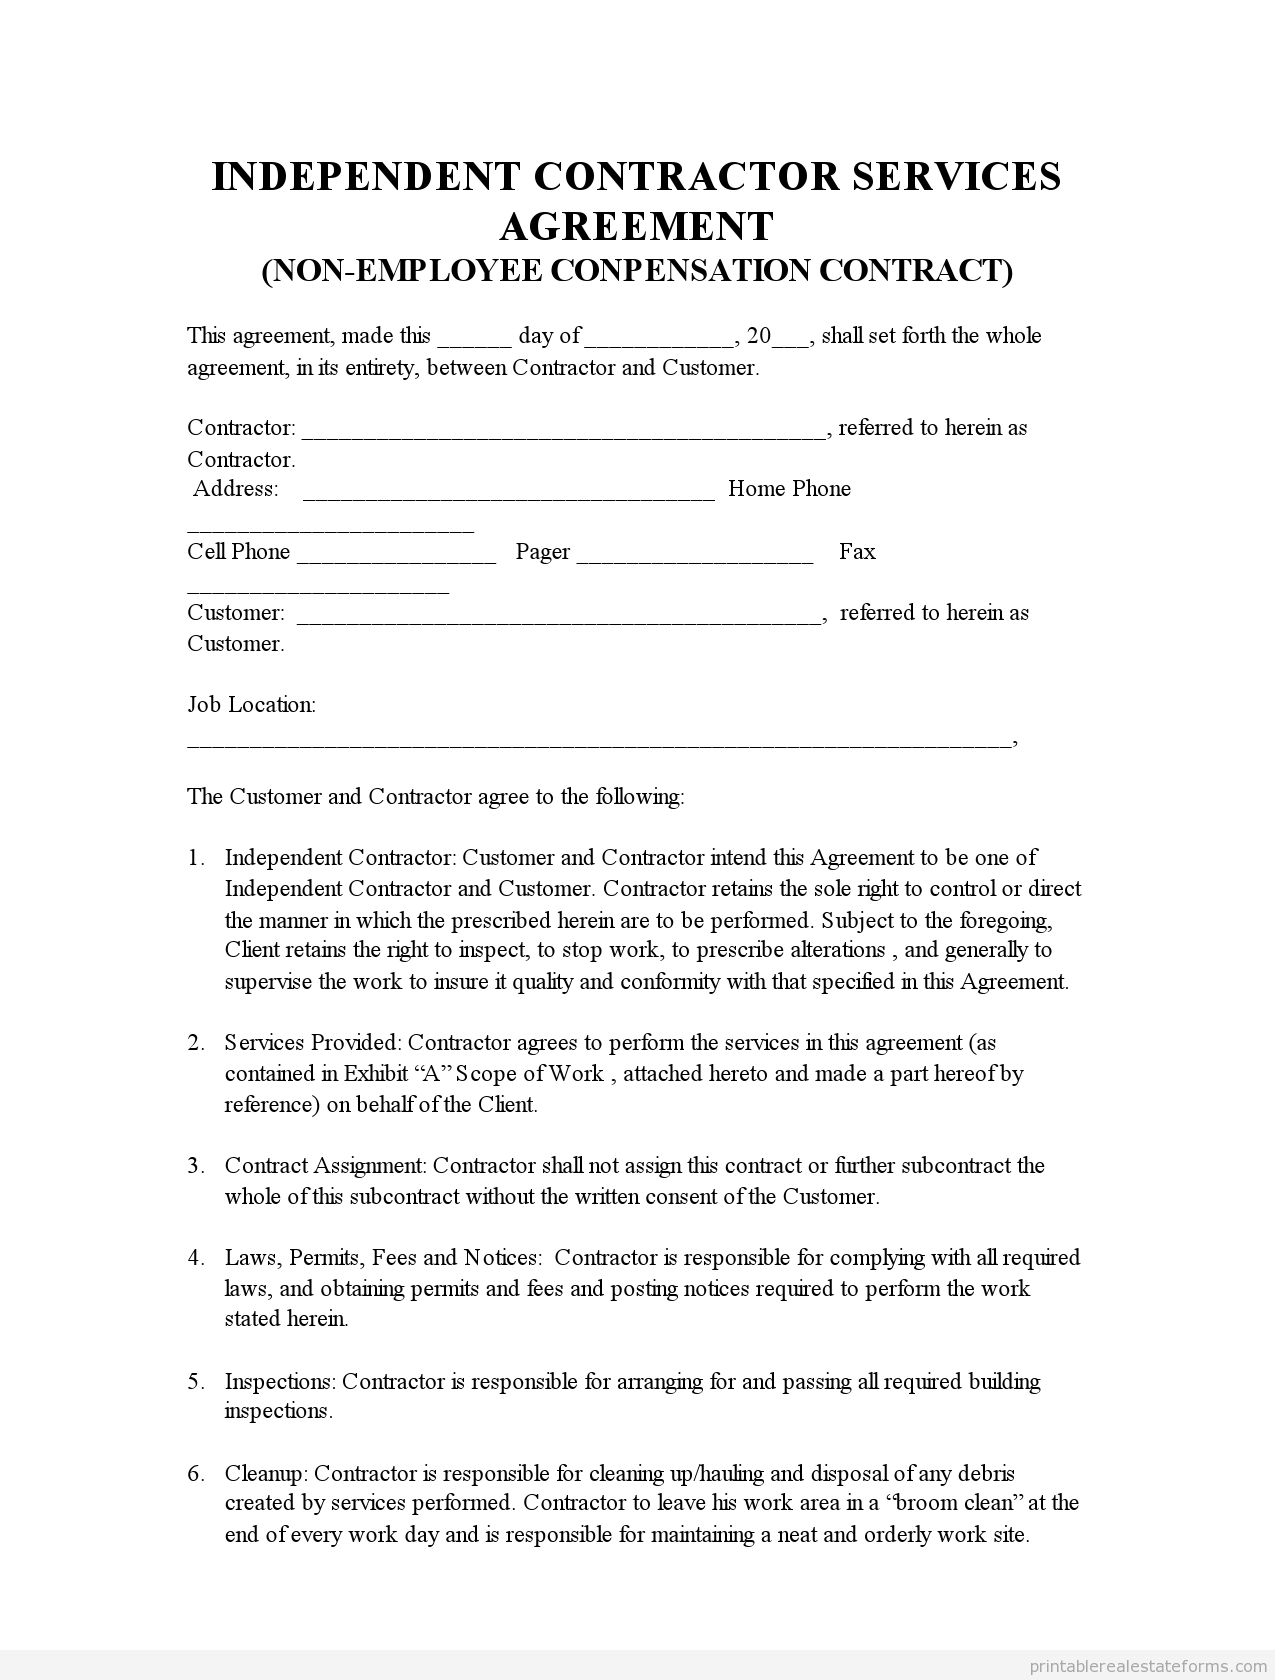 Sample Printable Indep Contractor Agreement  Form  Sample Real